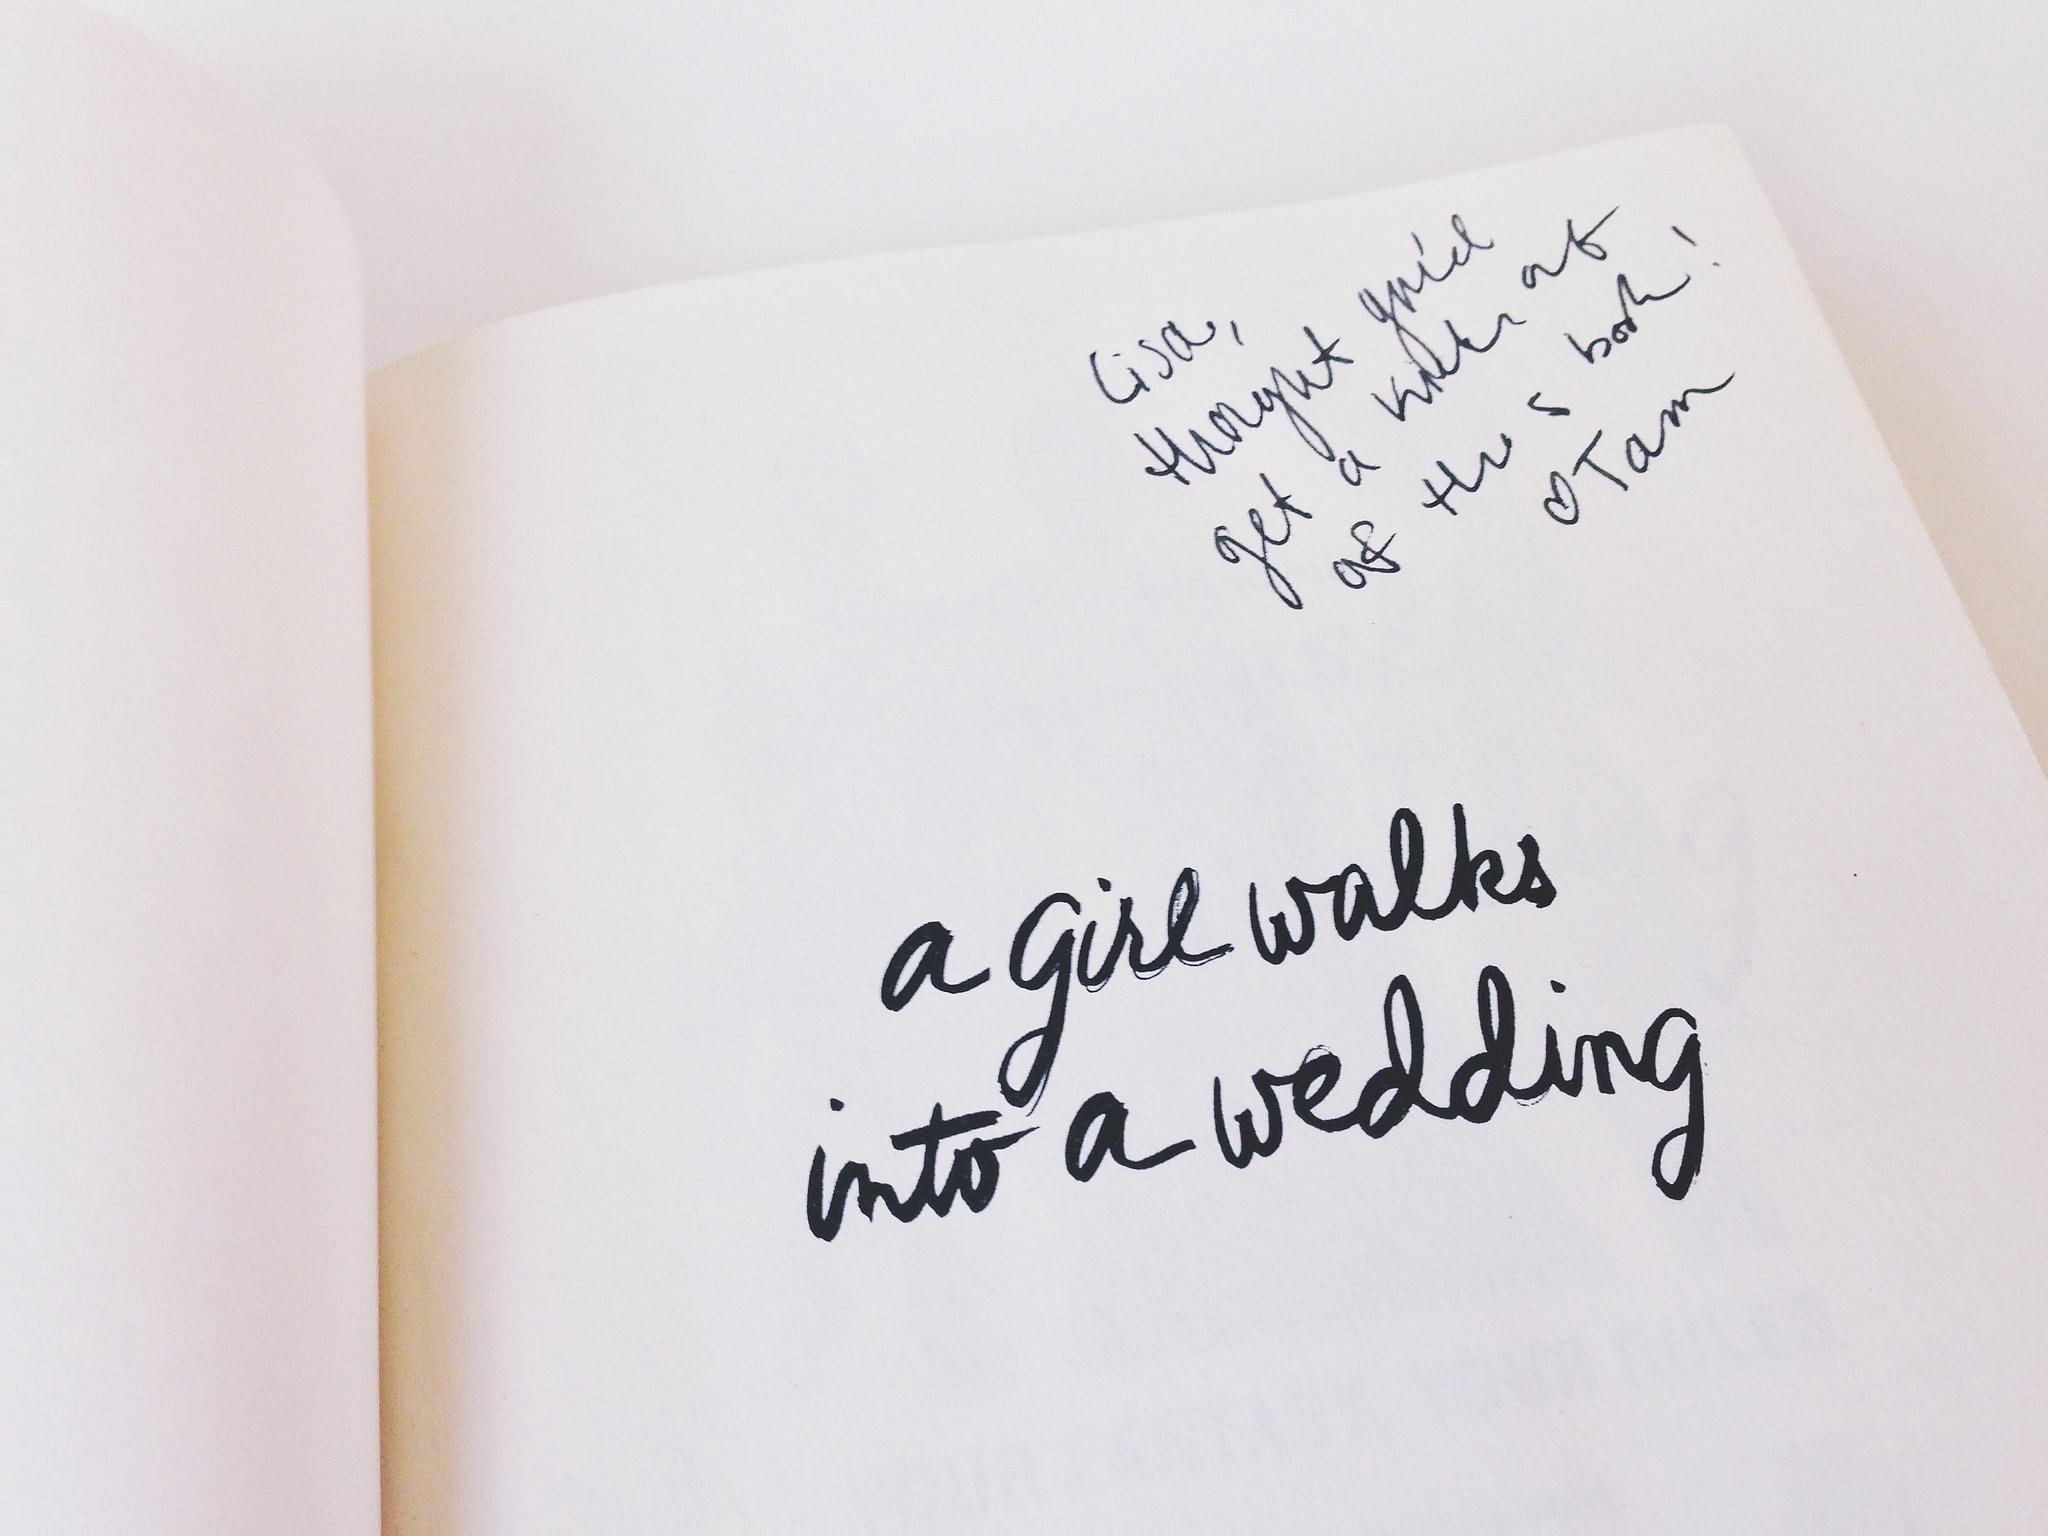 Do You Write Inscriptions in Books or Not?